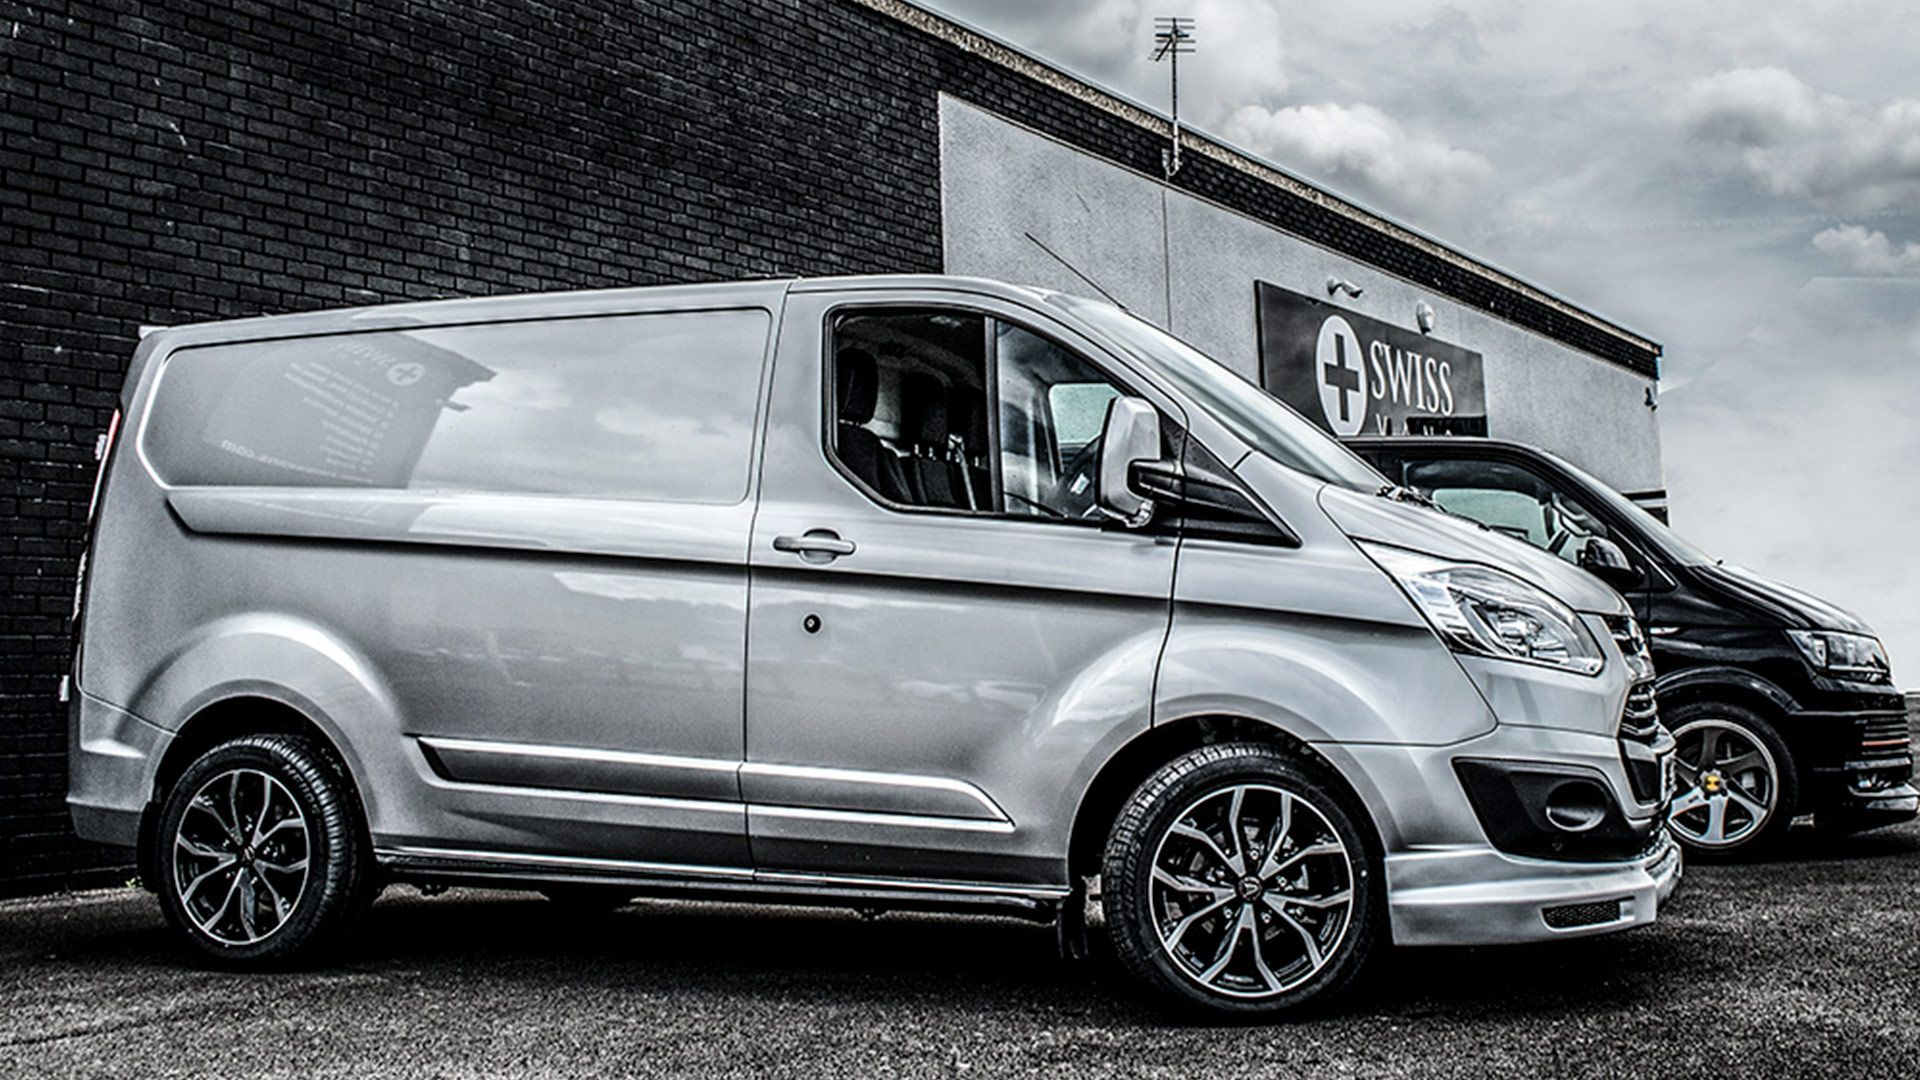 Vans For Sale Van Leasing Van Contract Hire Swiss Vans Ford